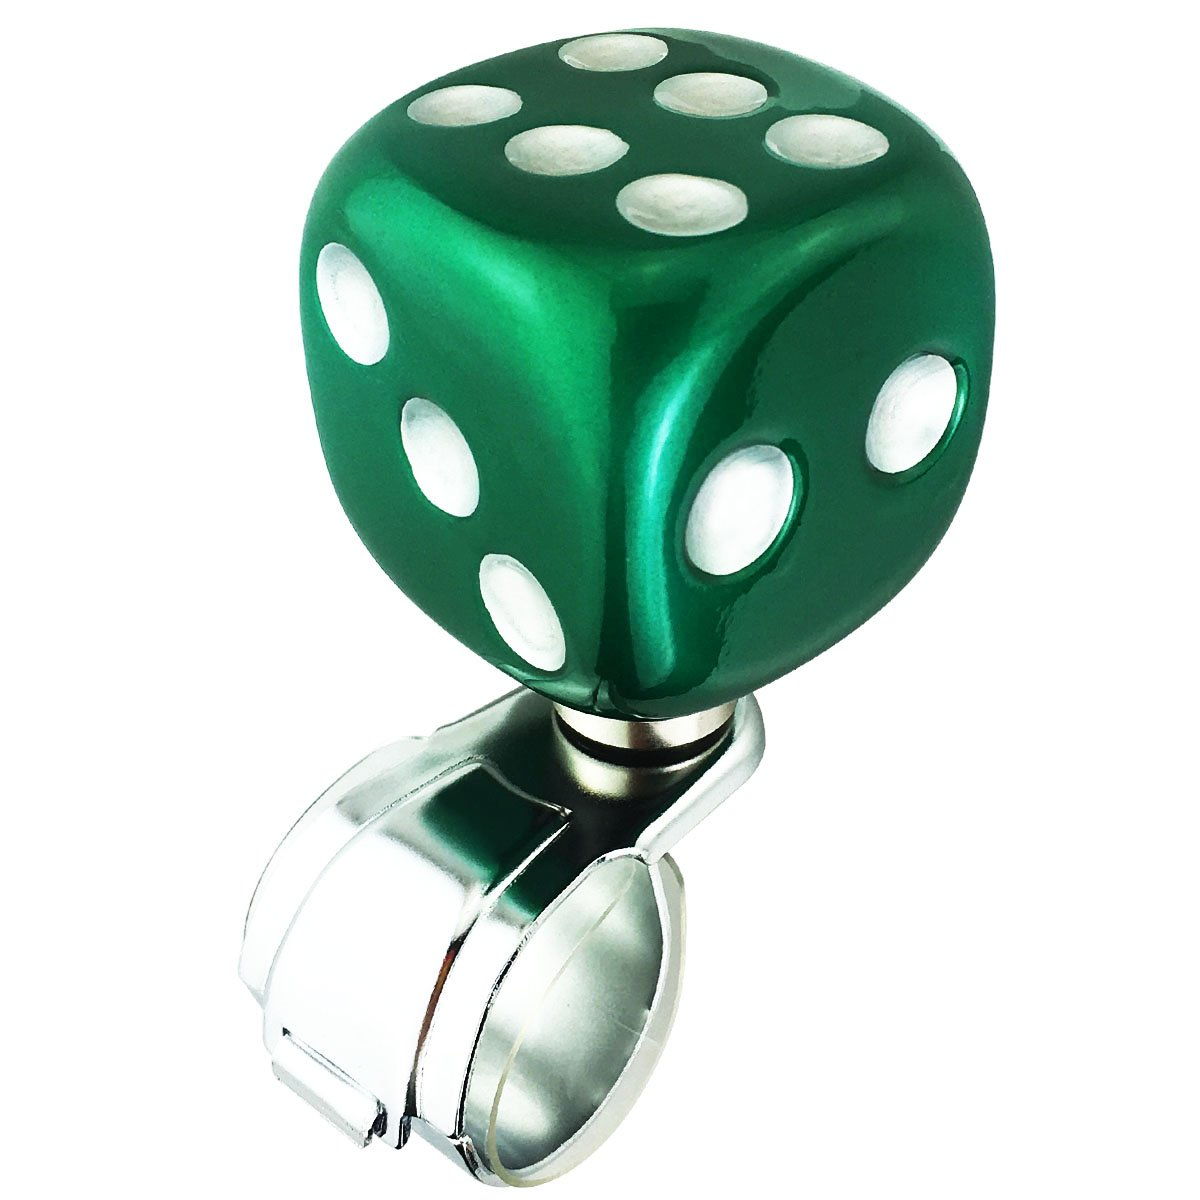 Abfer Steering Wheel Spinner Car Wheel Suicide Knob Dice Power Handle Ball Green Steering Spinner Knobs for Vehicles